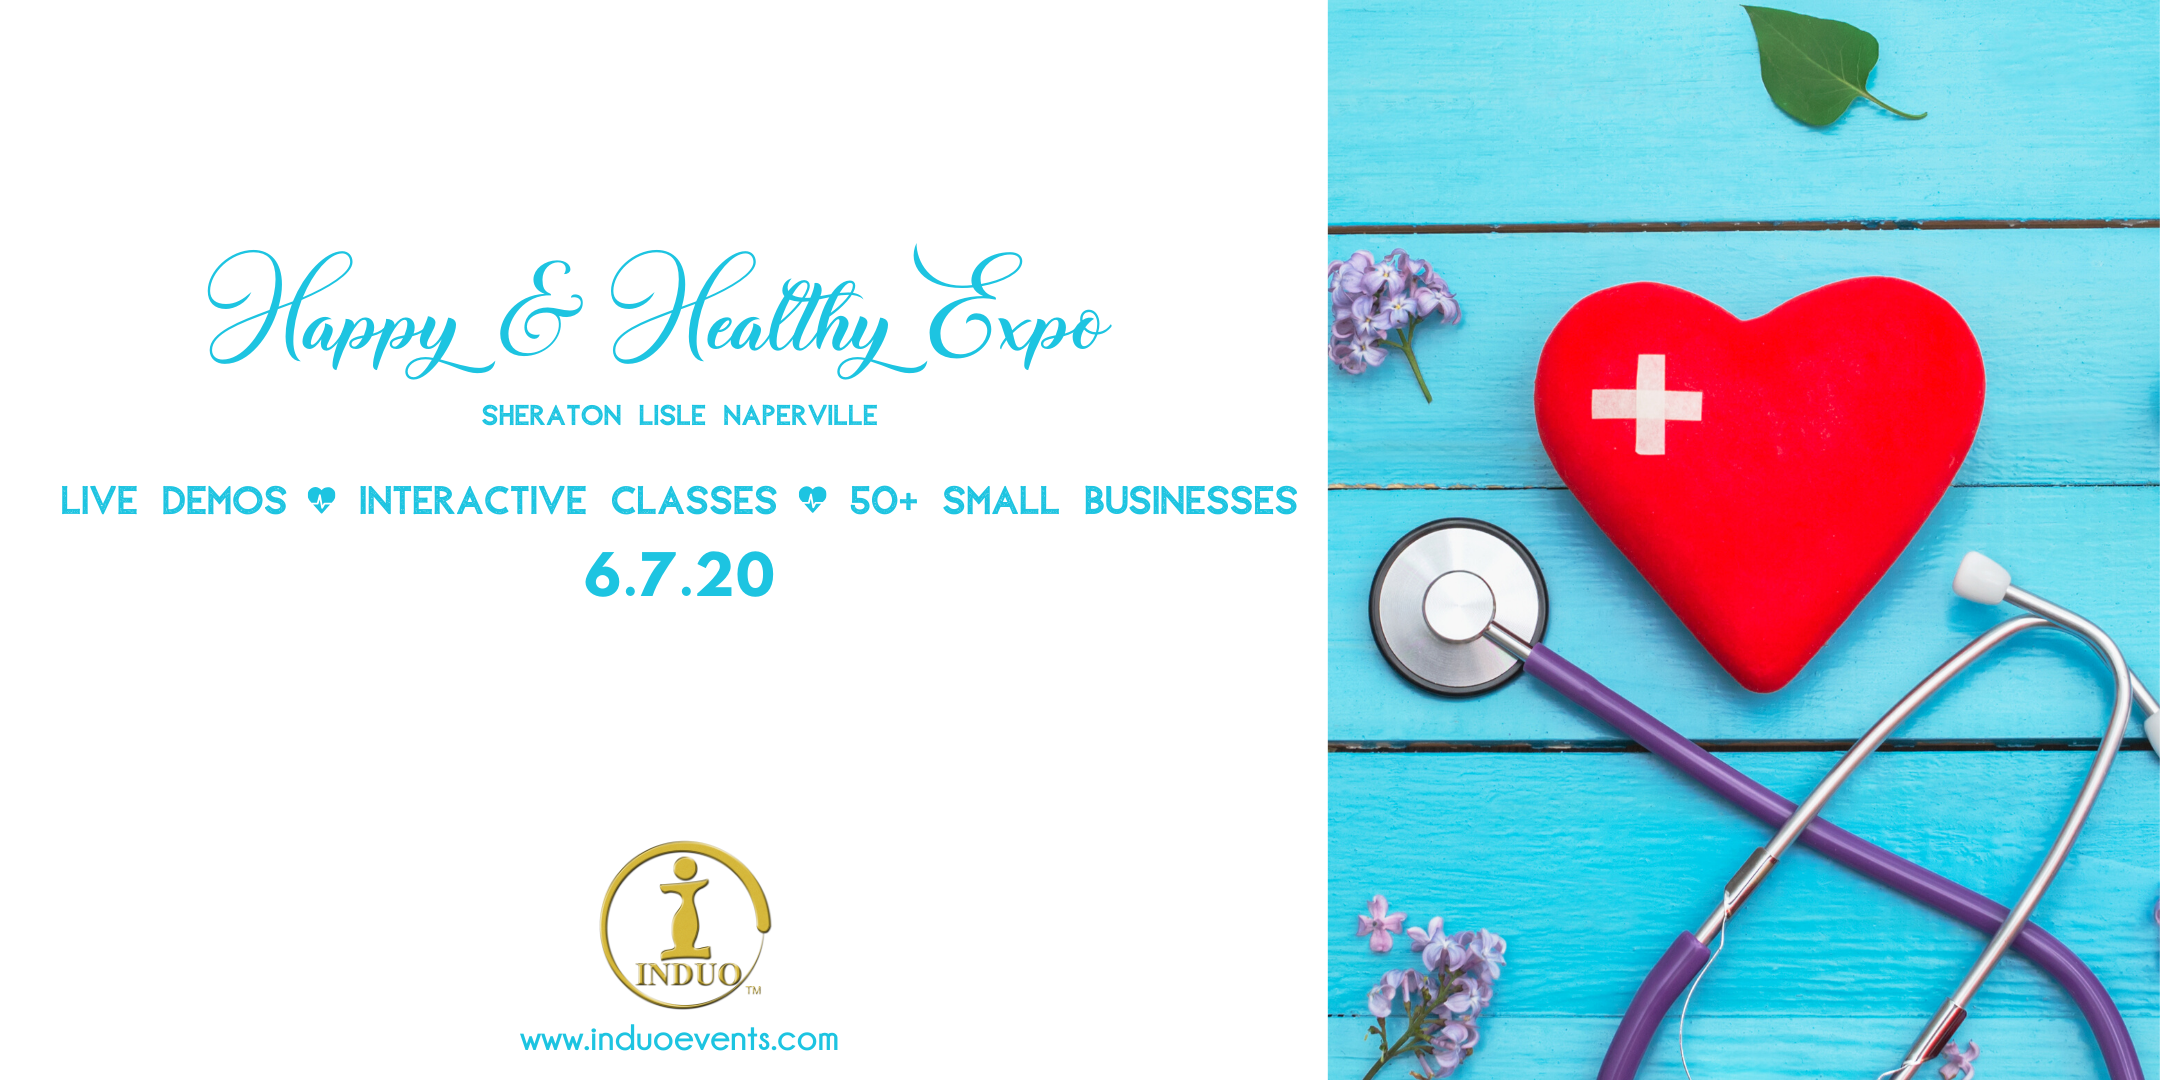 4th Annual Happy & Healthy Expo